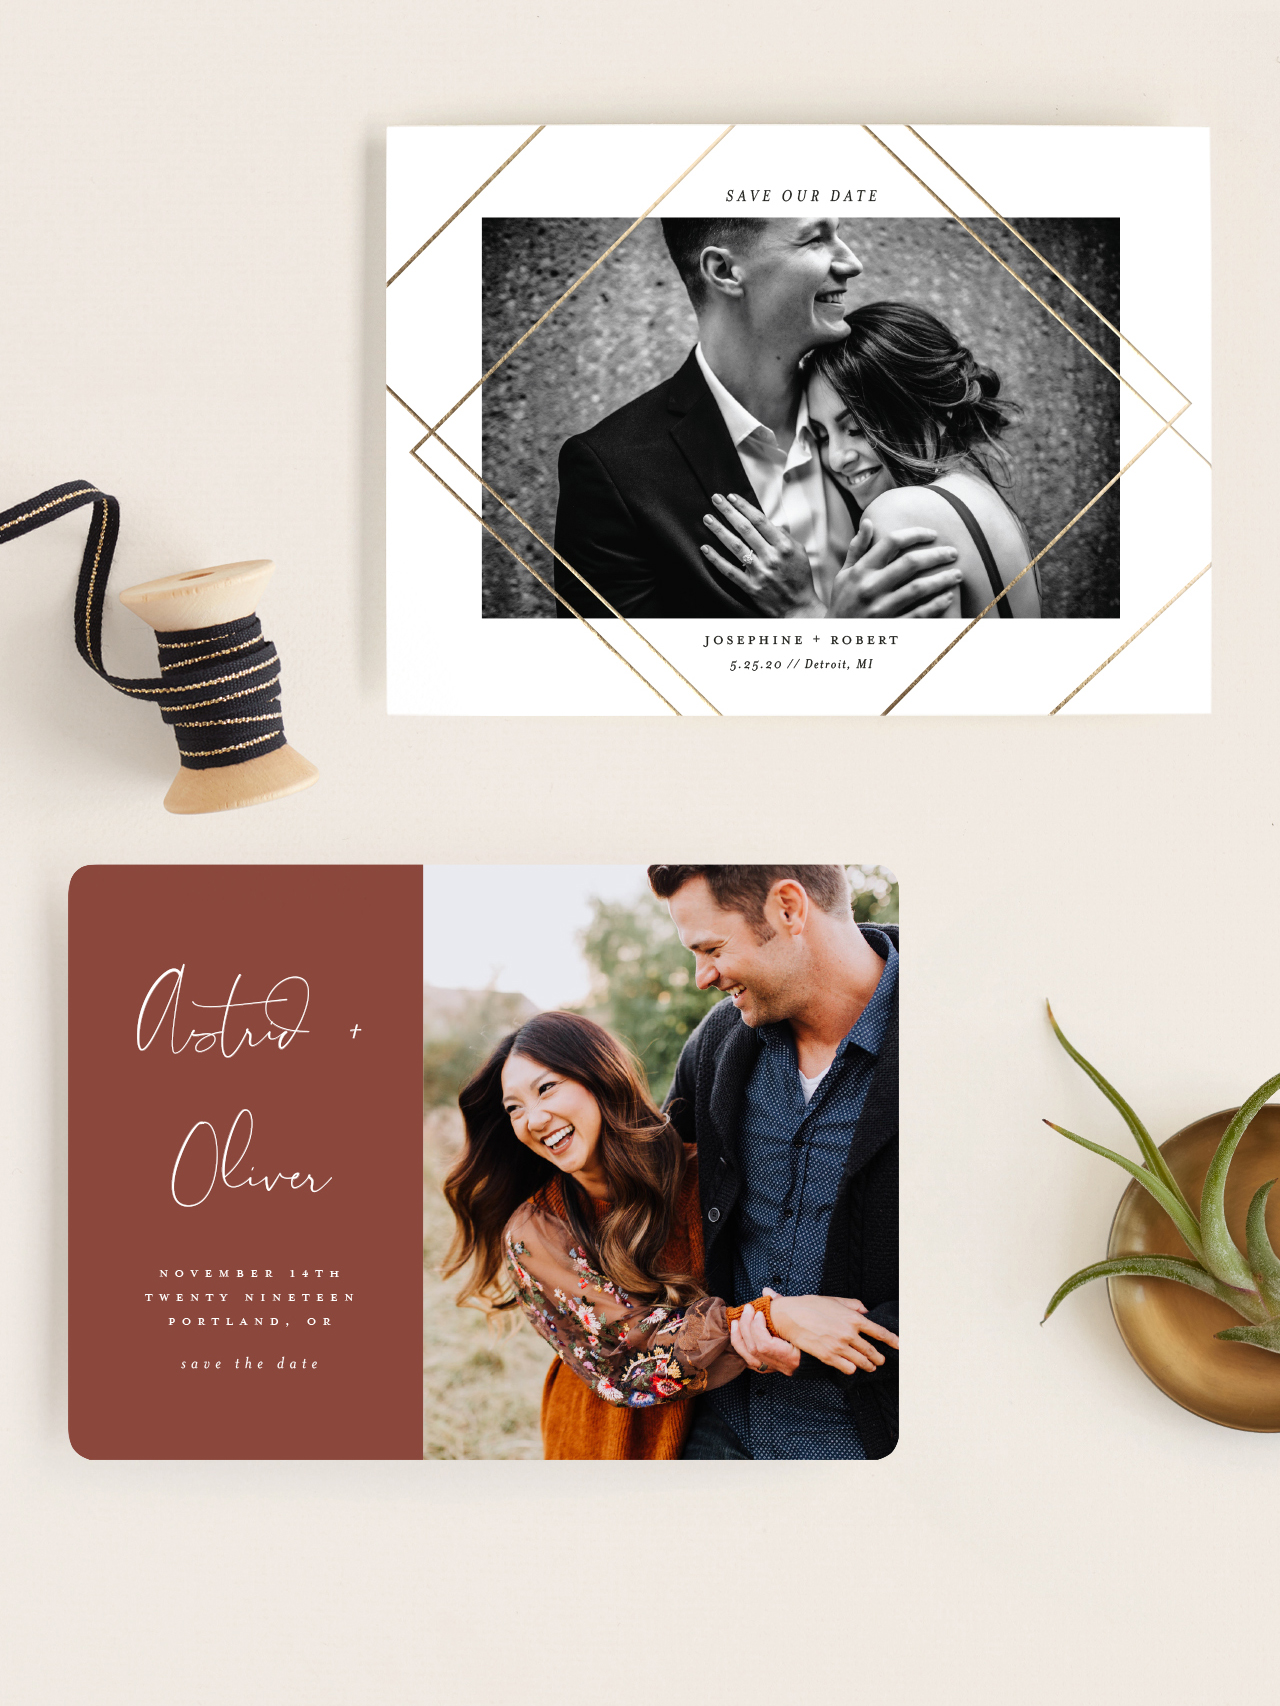 www.santabarbarawedding.com | new save the date assortment by minted